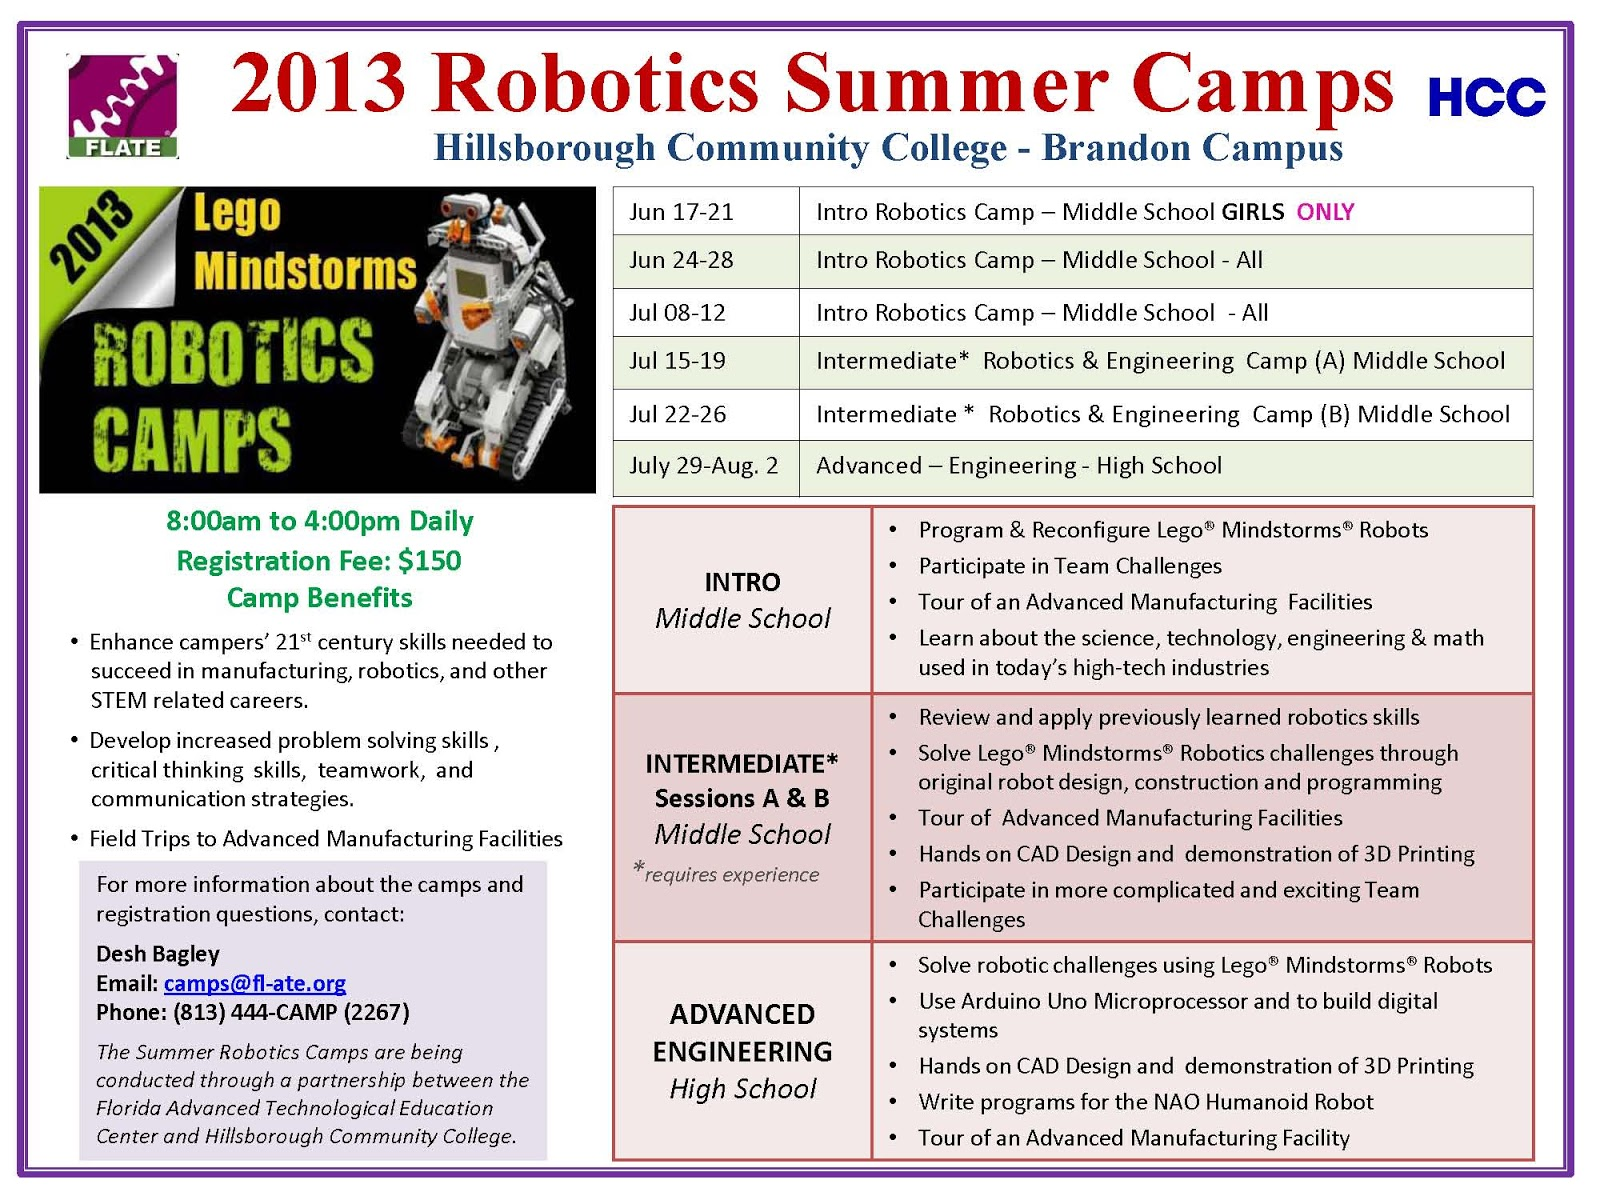 Flate Focus Engineering And Robotics Summer Camps At Hcc Brandon